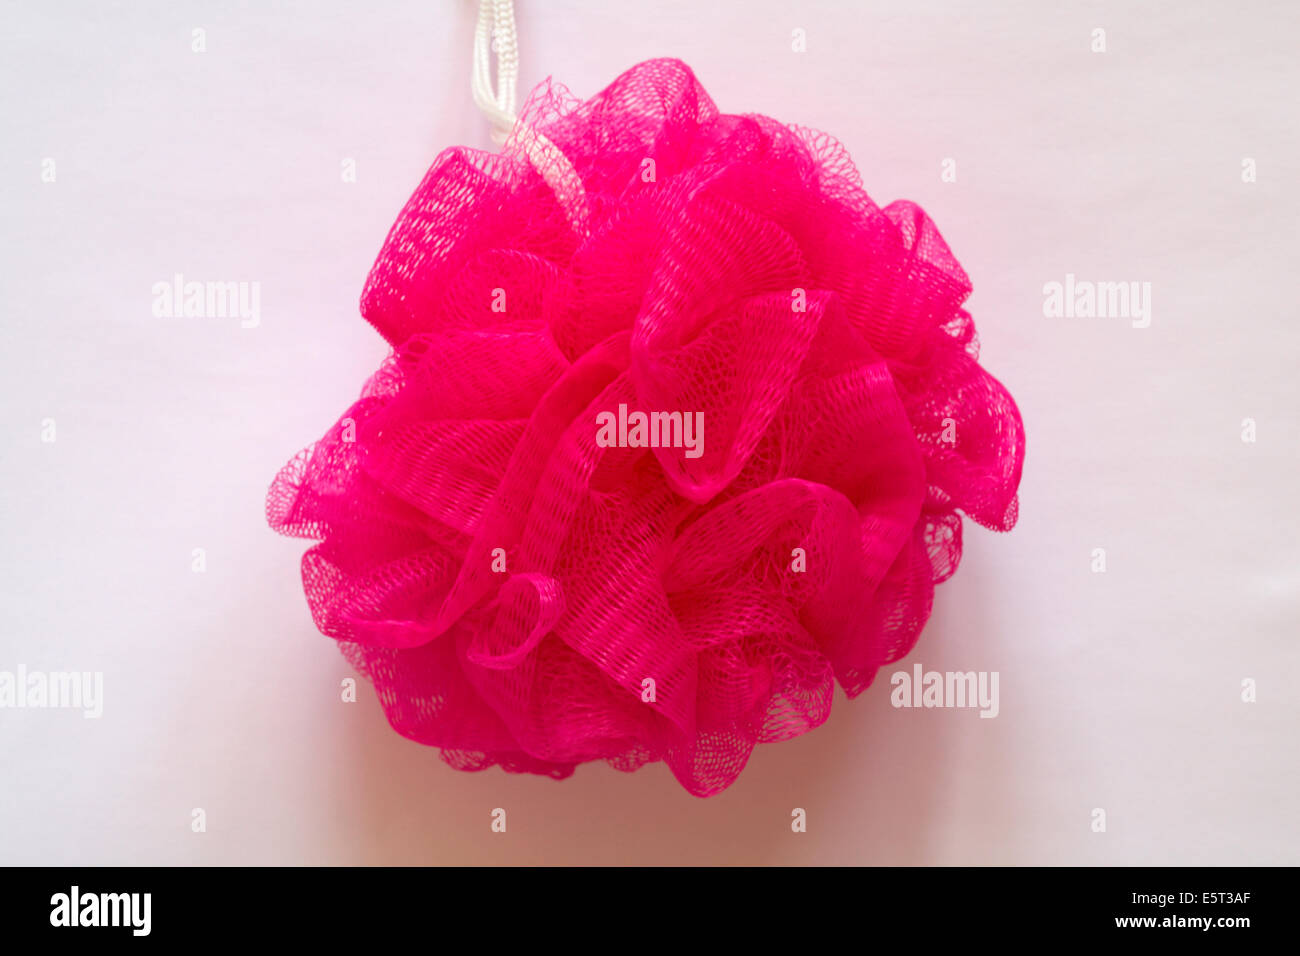 pink body mop for bathing set on white background - Stock Image